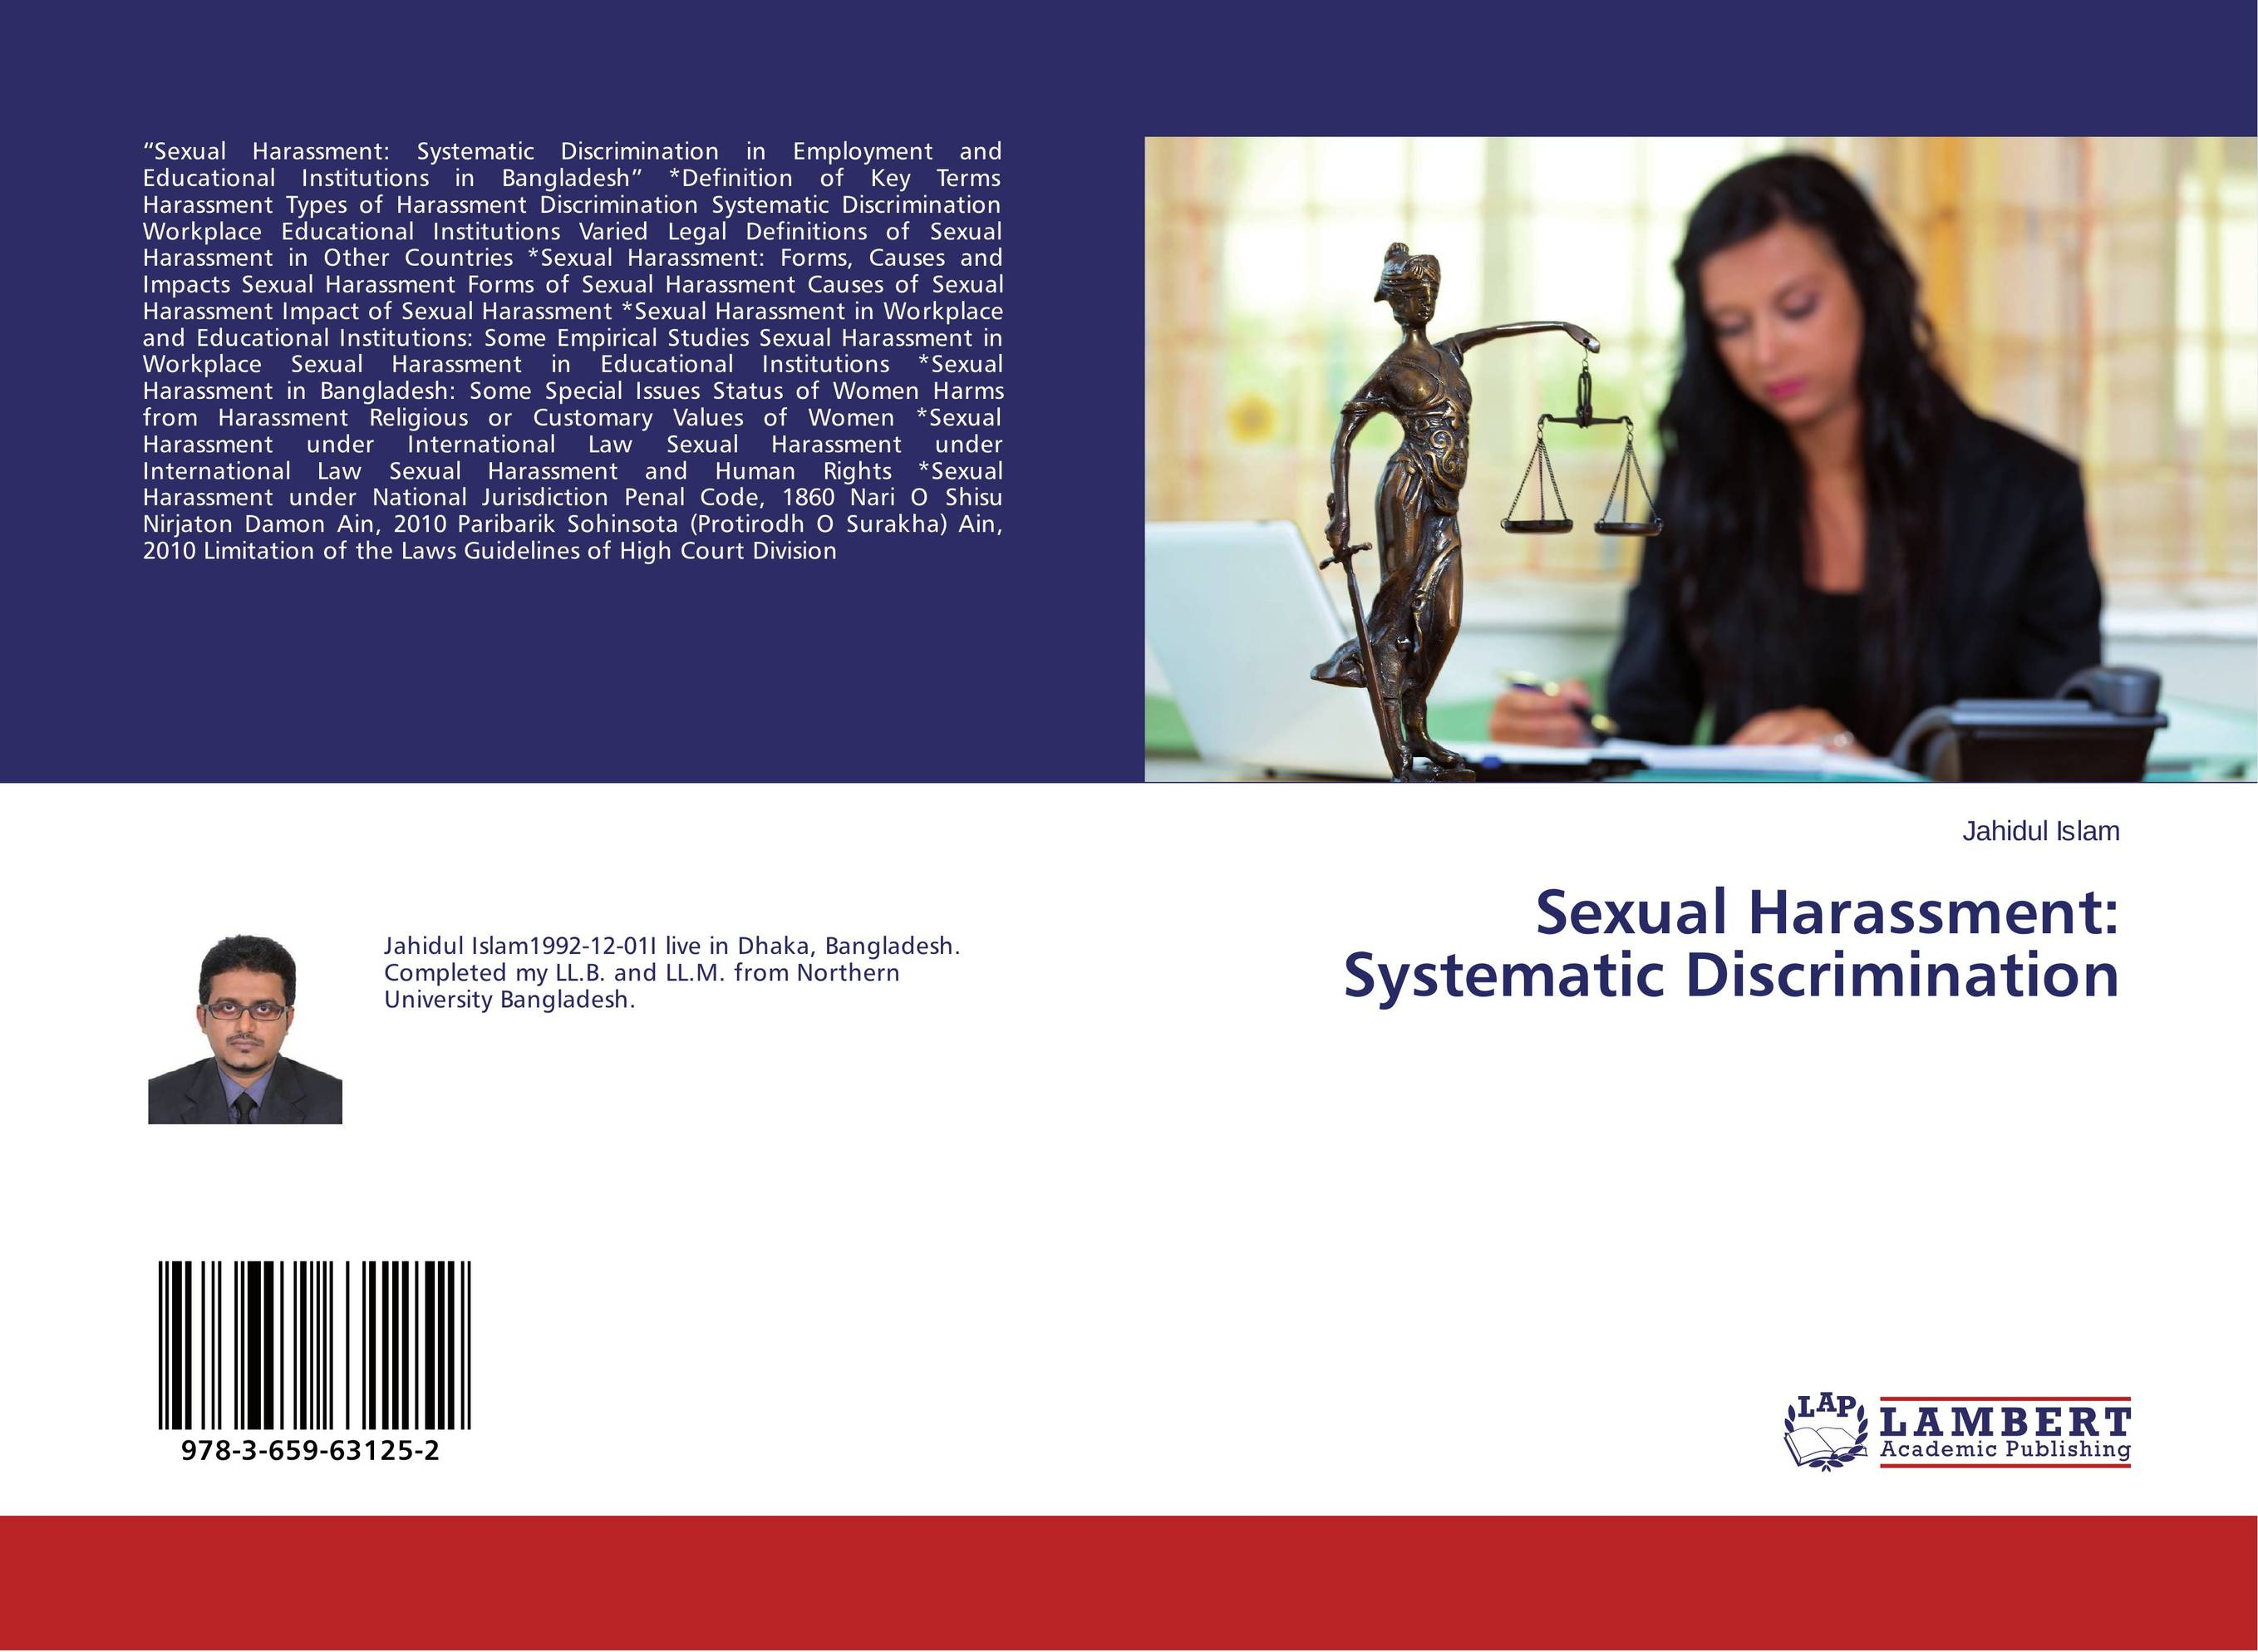 a look at the problem of sexual harassment and discrimination in america Sexual harassment is a growing problem in the government agencies, schools, and the corporations of the world however, many corporations are now adopting new anti-harassment policies(conta) the definition of sexual harassment is any unwanted or inappropriate sexual attention.